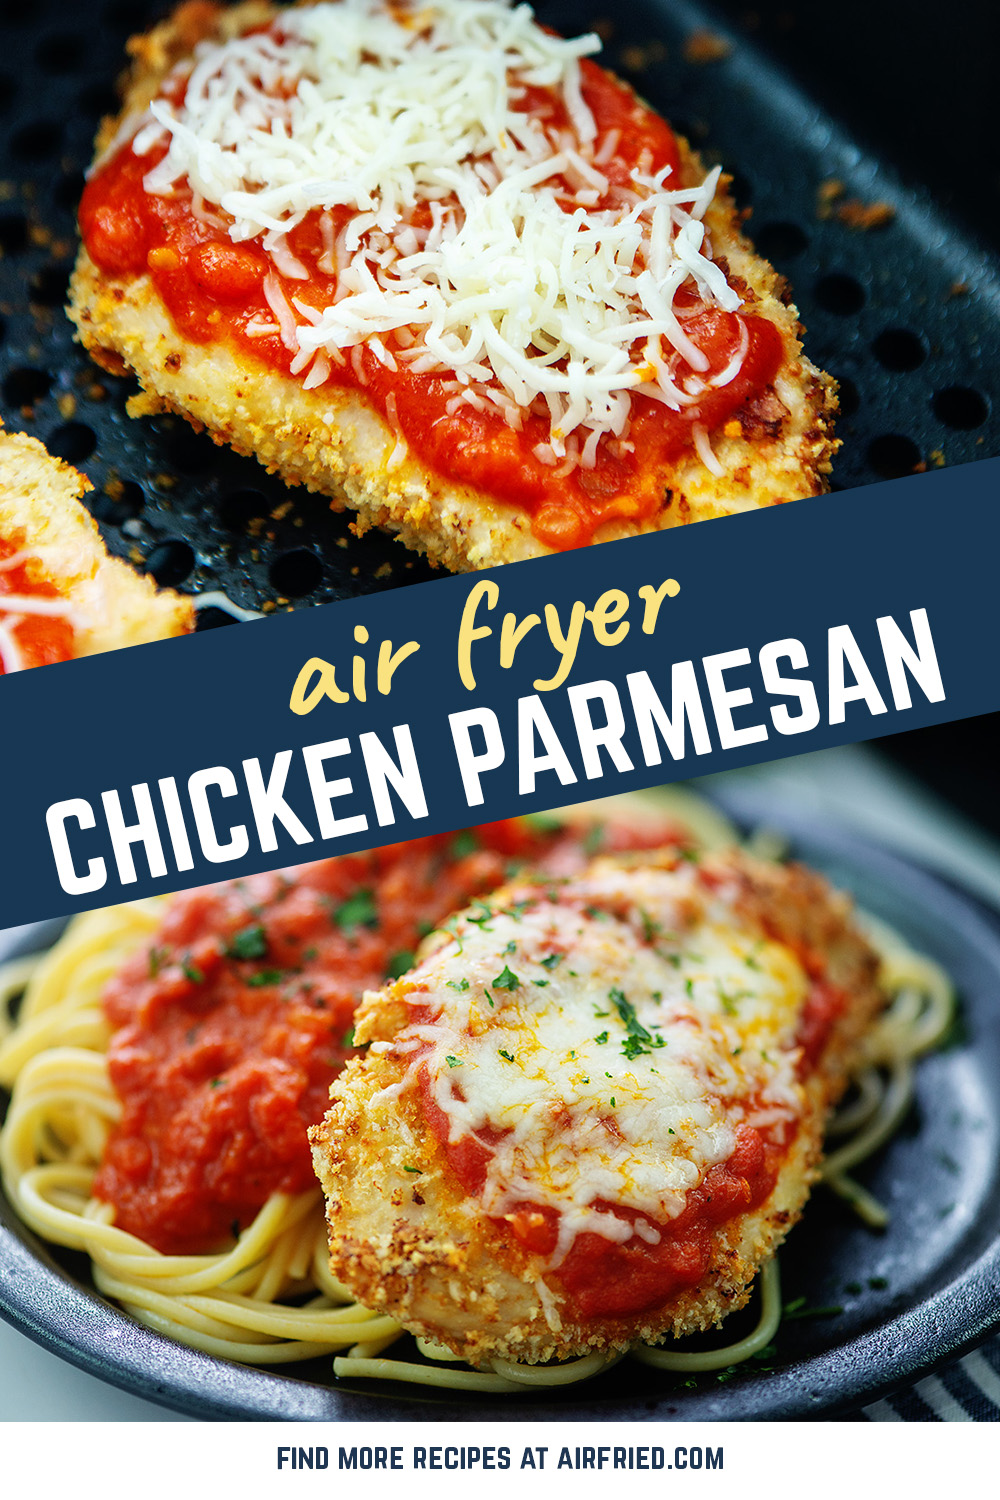 You can make chicken parmesan in your air fryer! It is super easy and a great dinner! #airfried #chickenrecipes #recipe